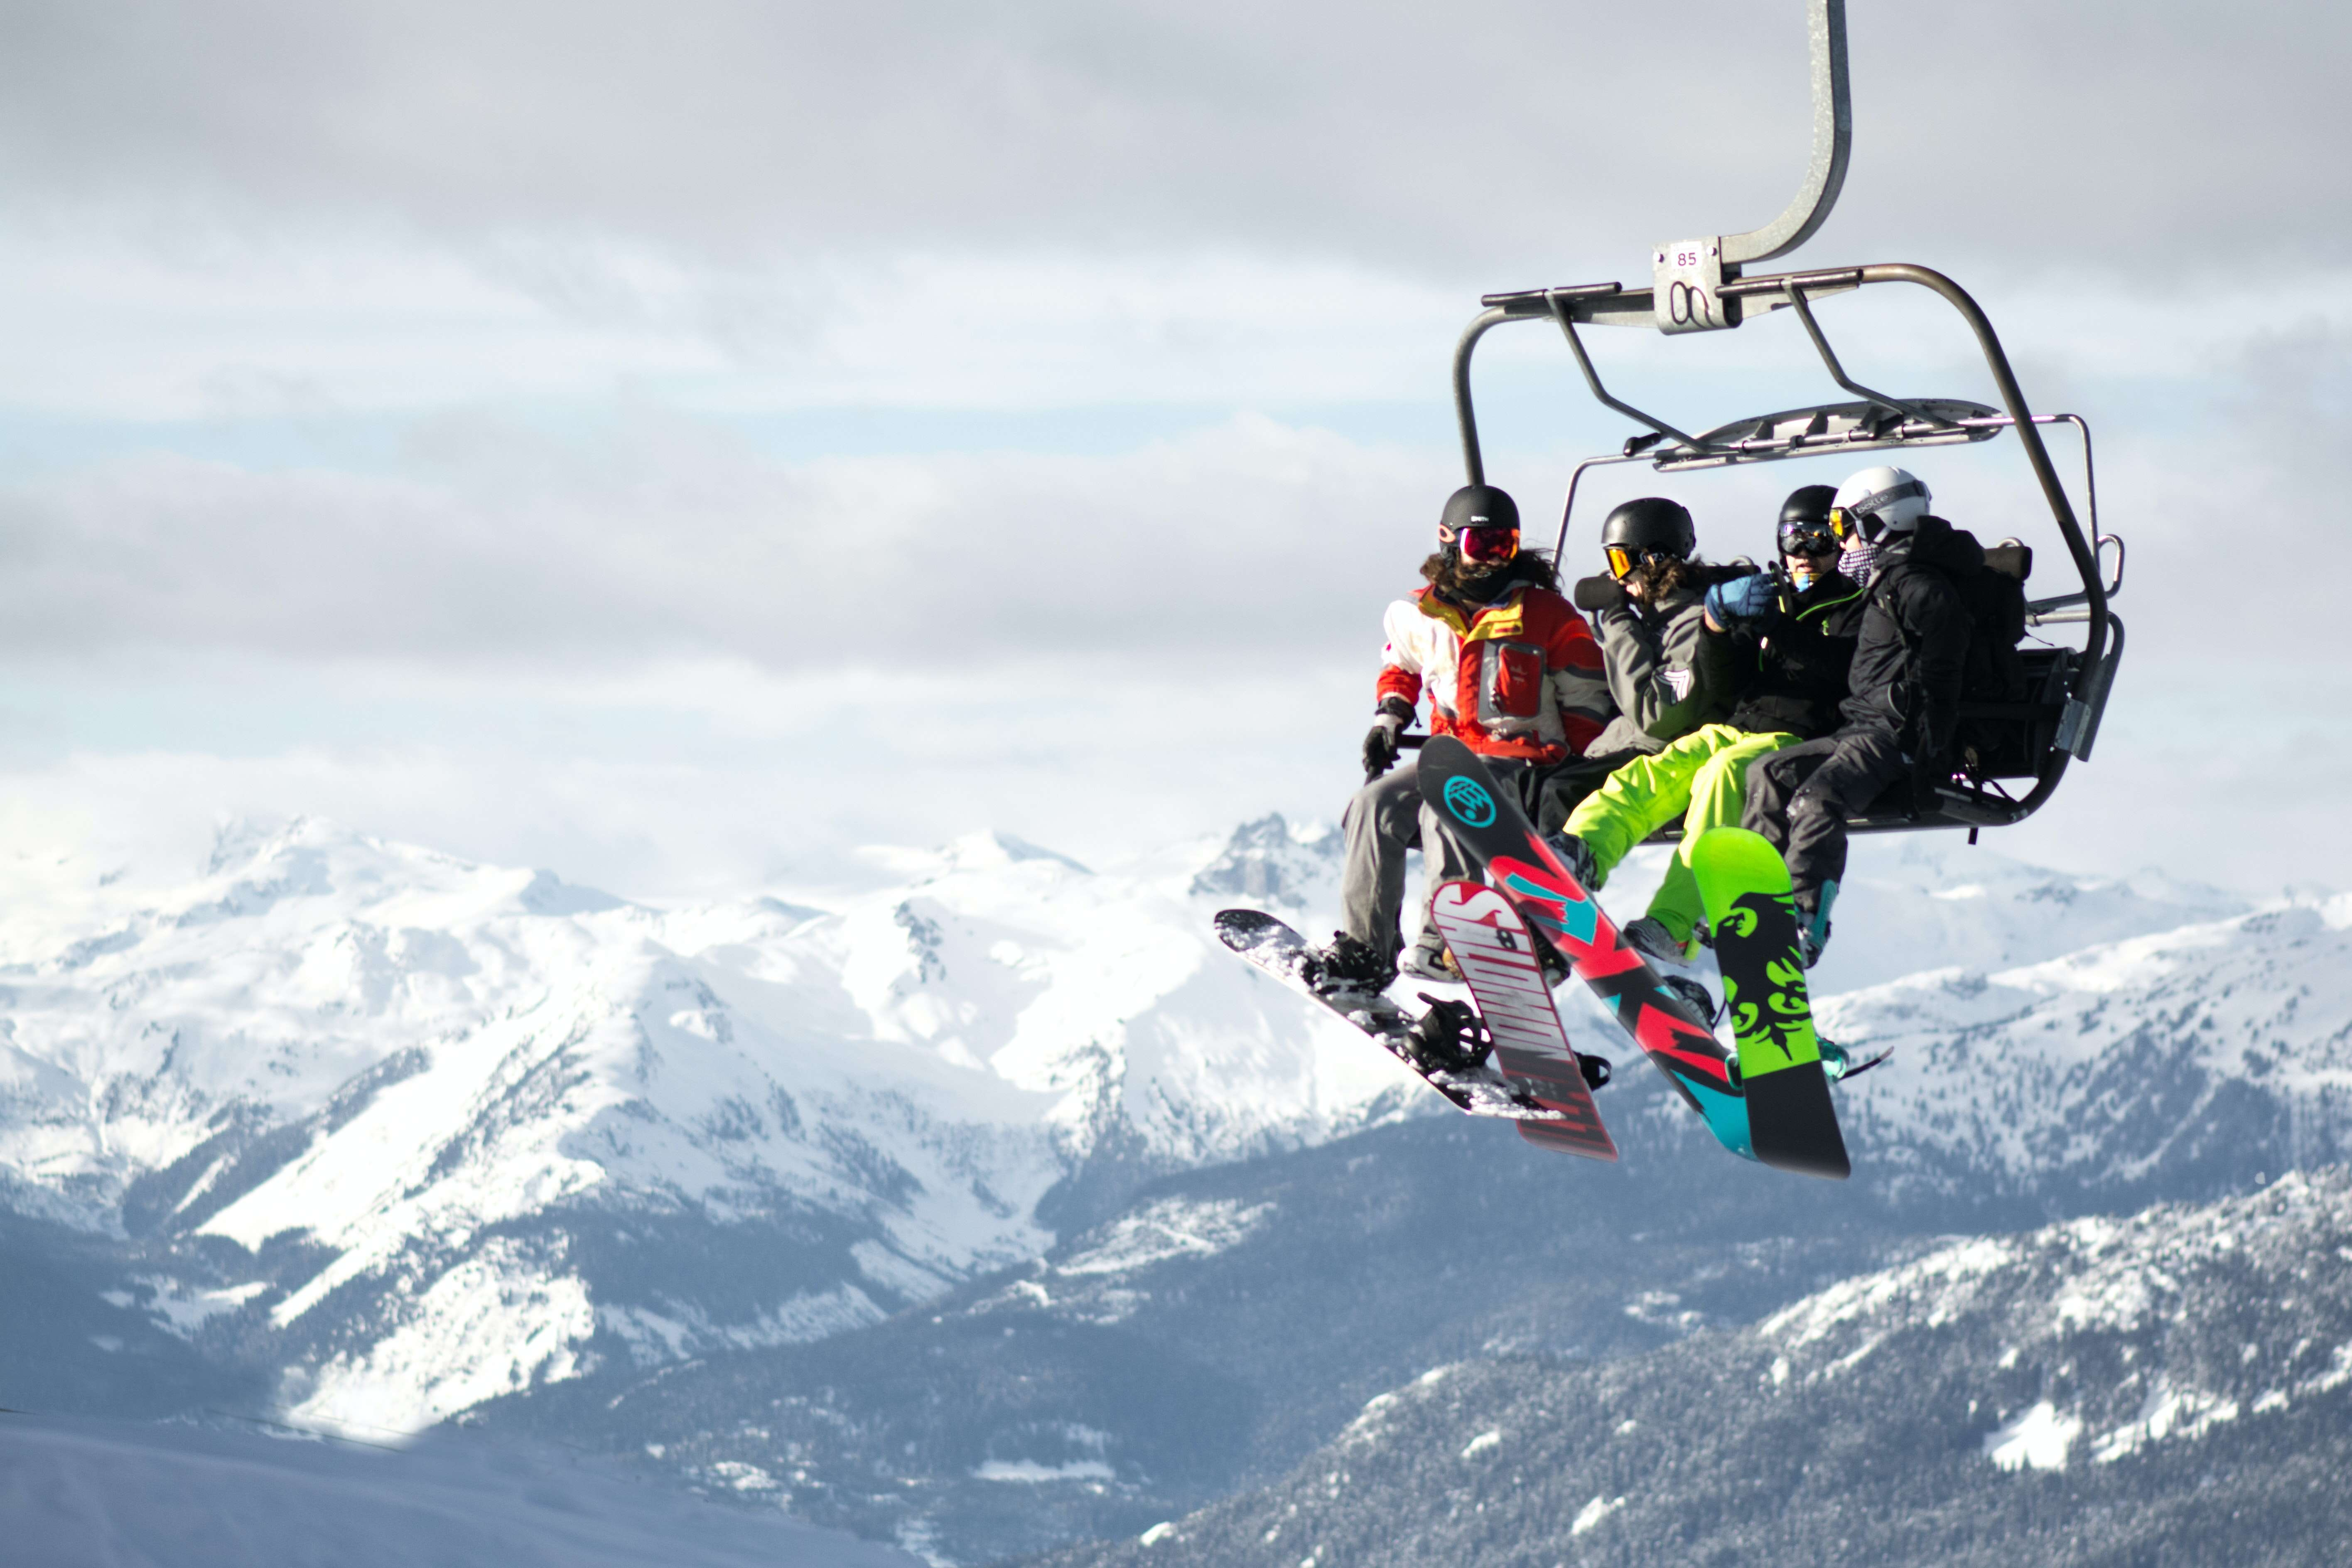 The Best Ski Resorts in Canada